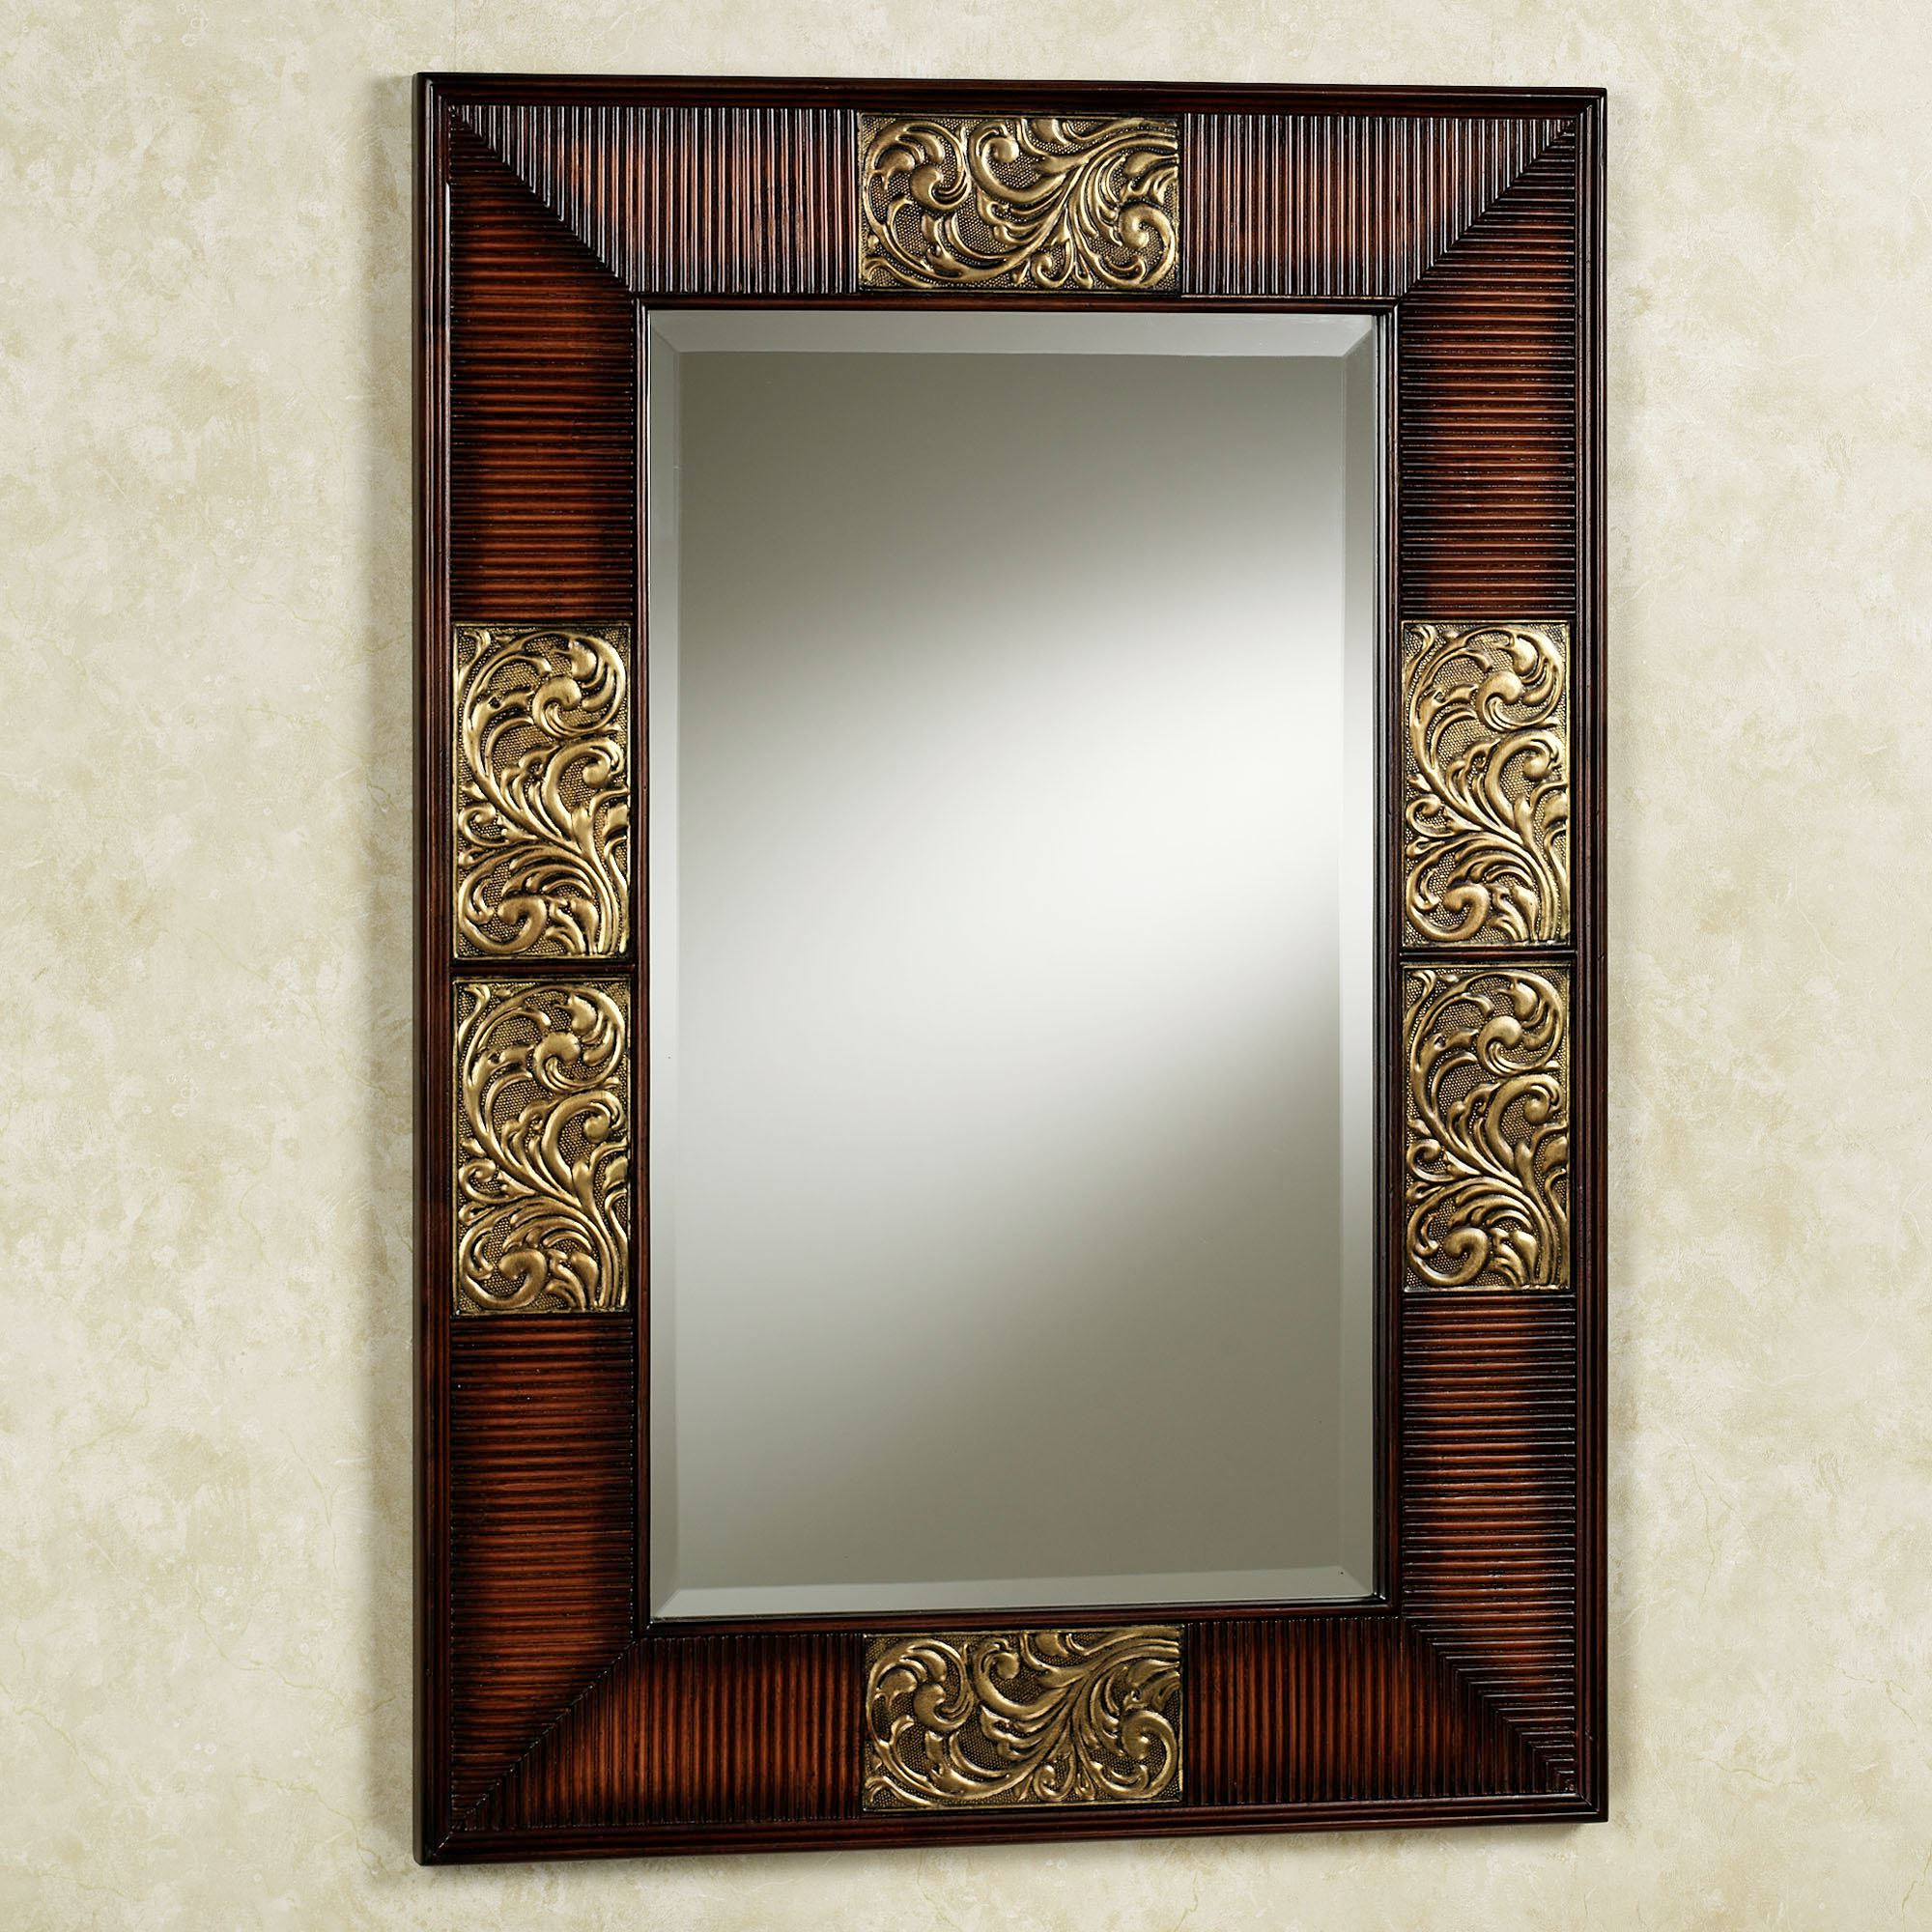 Sarantino Wall Mirror Pertaining To Most Up To Date Entryway Wall Mirrors (View 17 of 20)